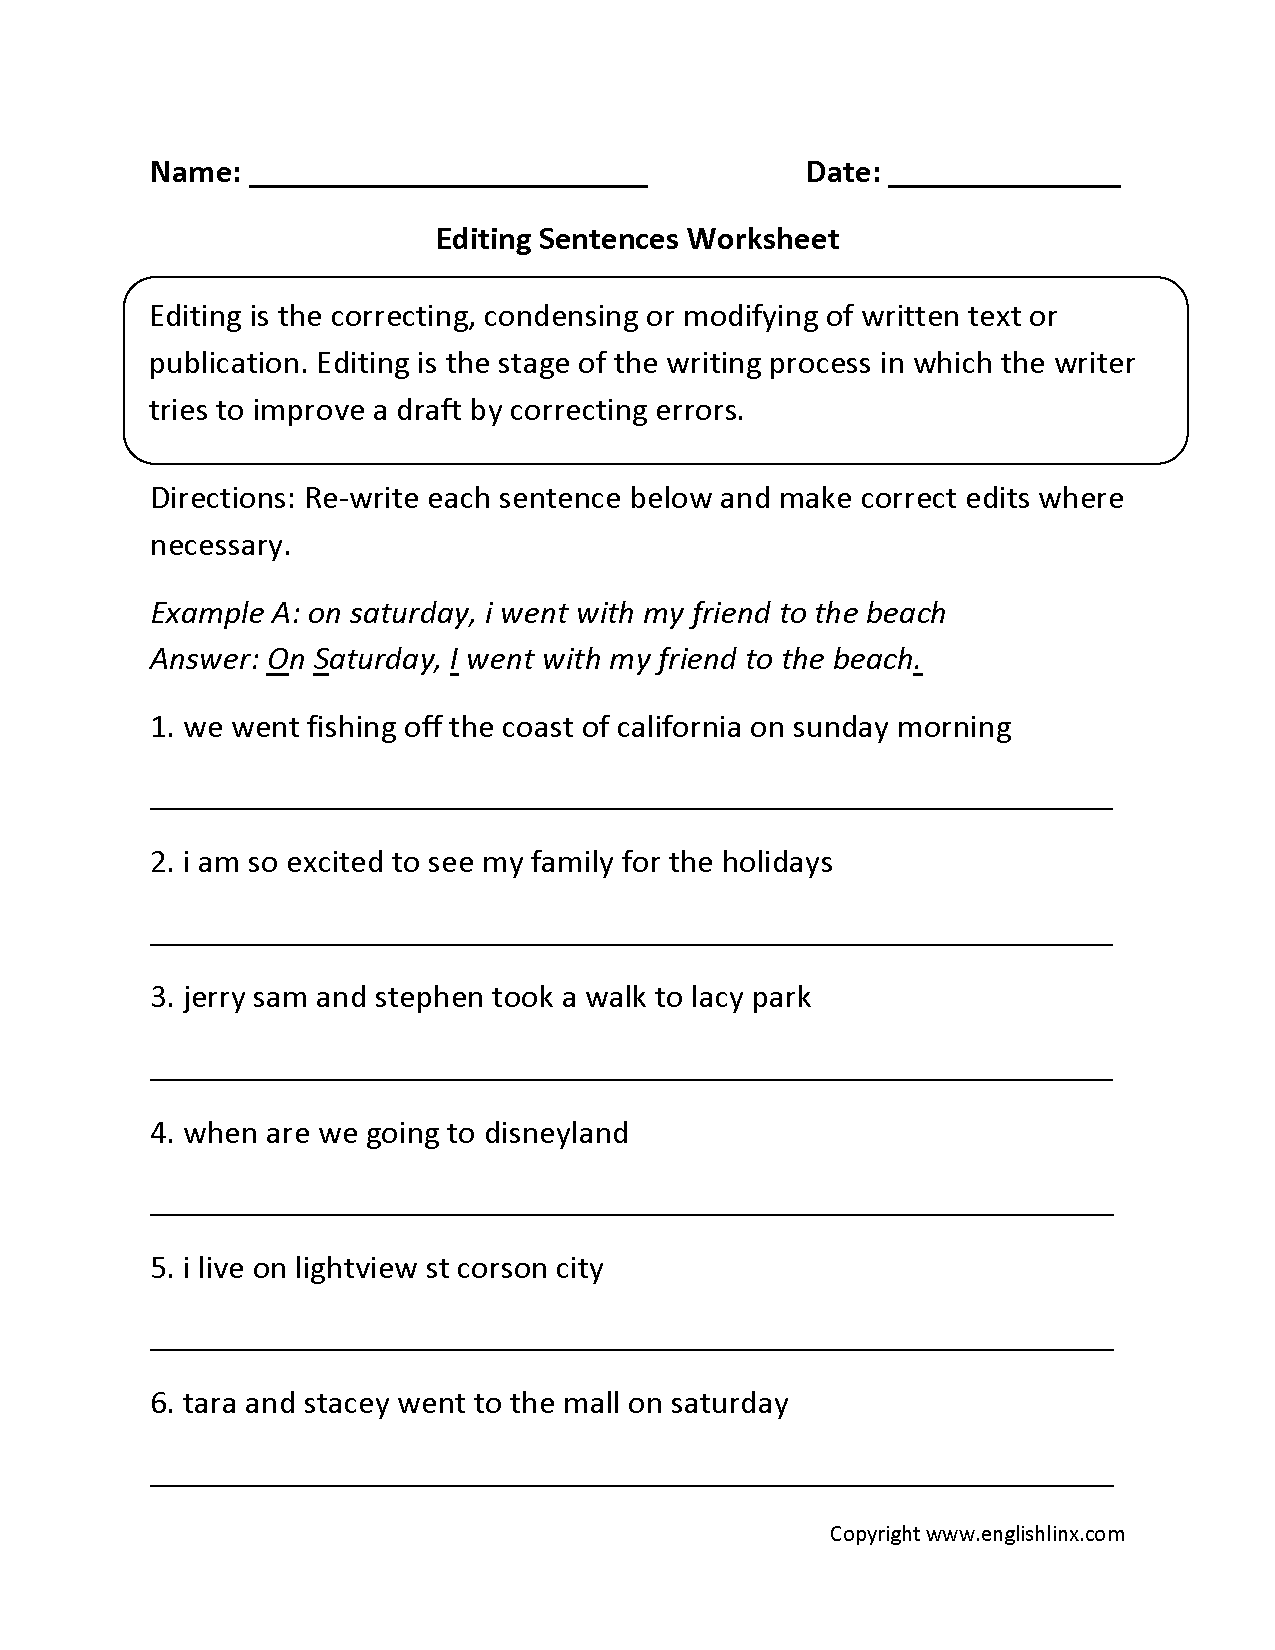 correcting essays worksheet printable letters worksheets for kindergarten coloring printable letters worksheets for kindergarten coloring middot paper editing english literature essay